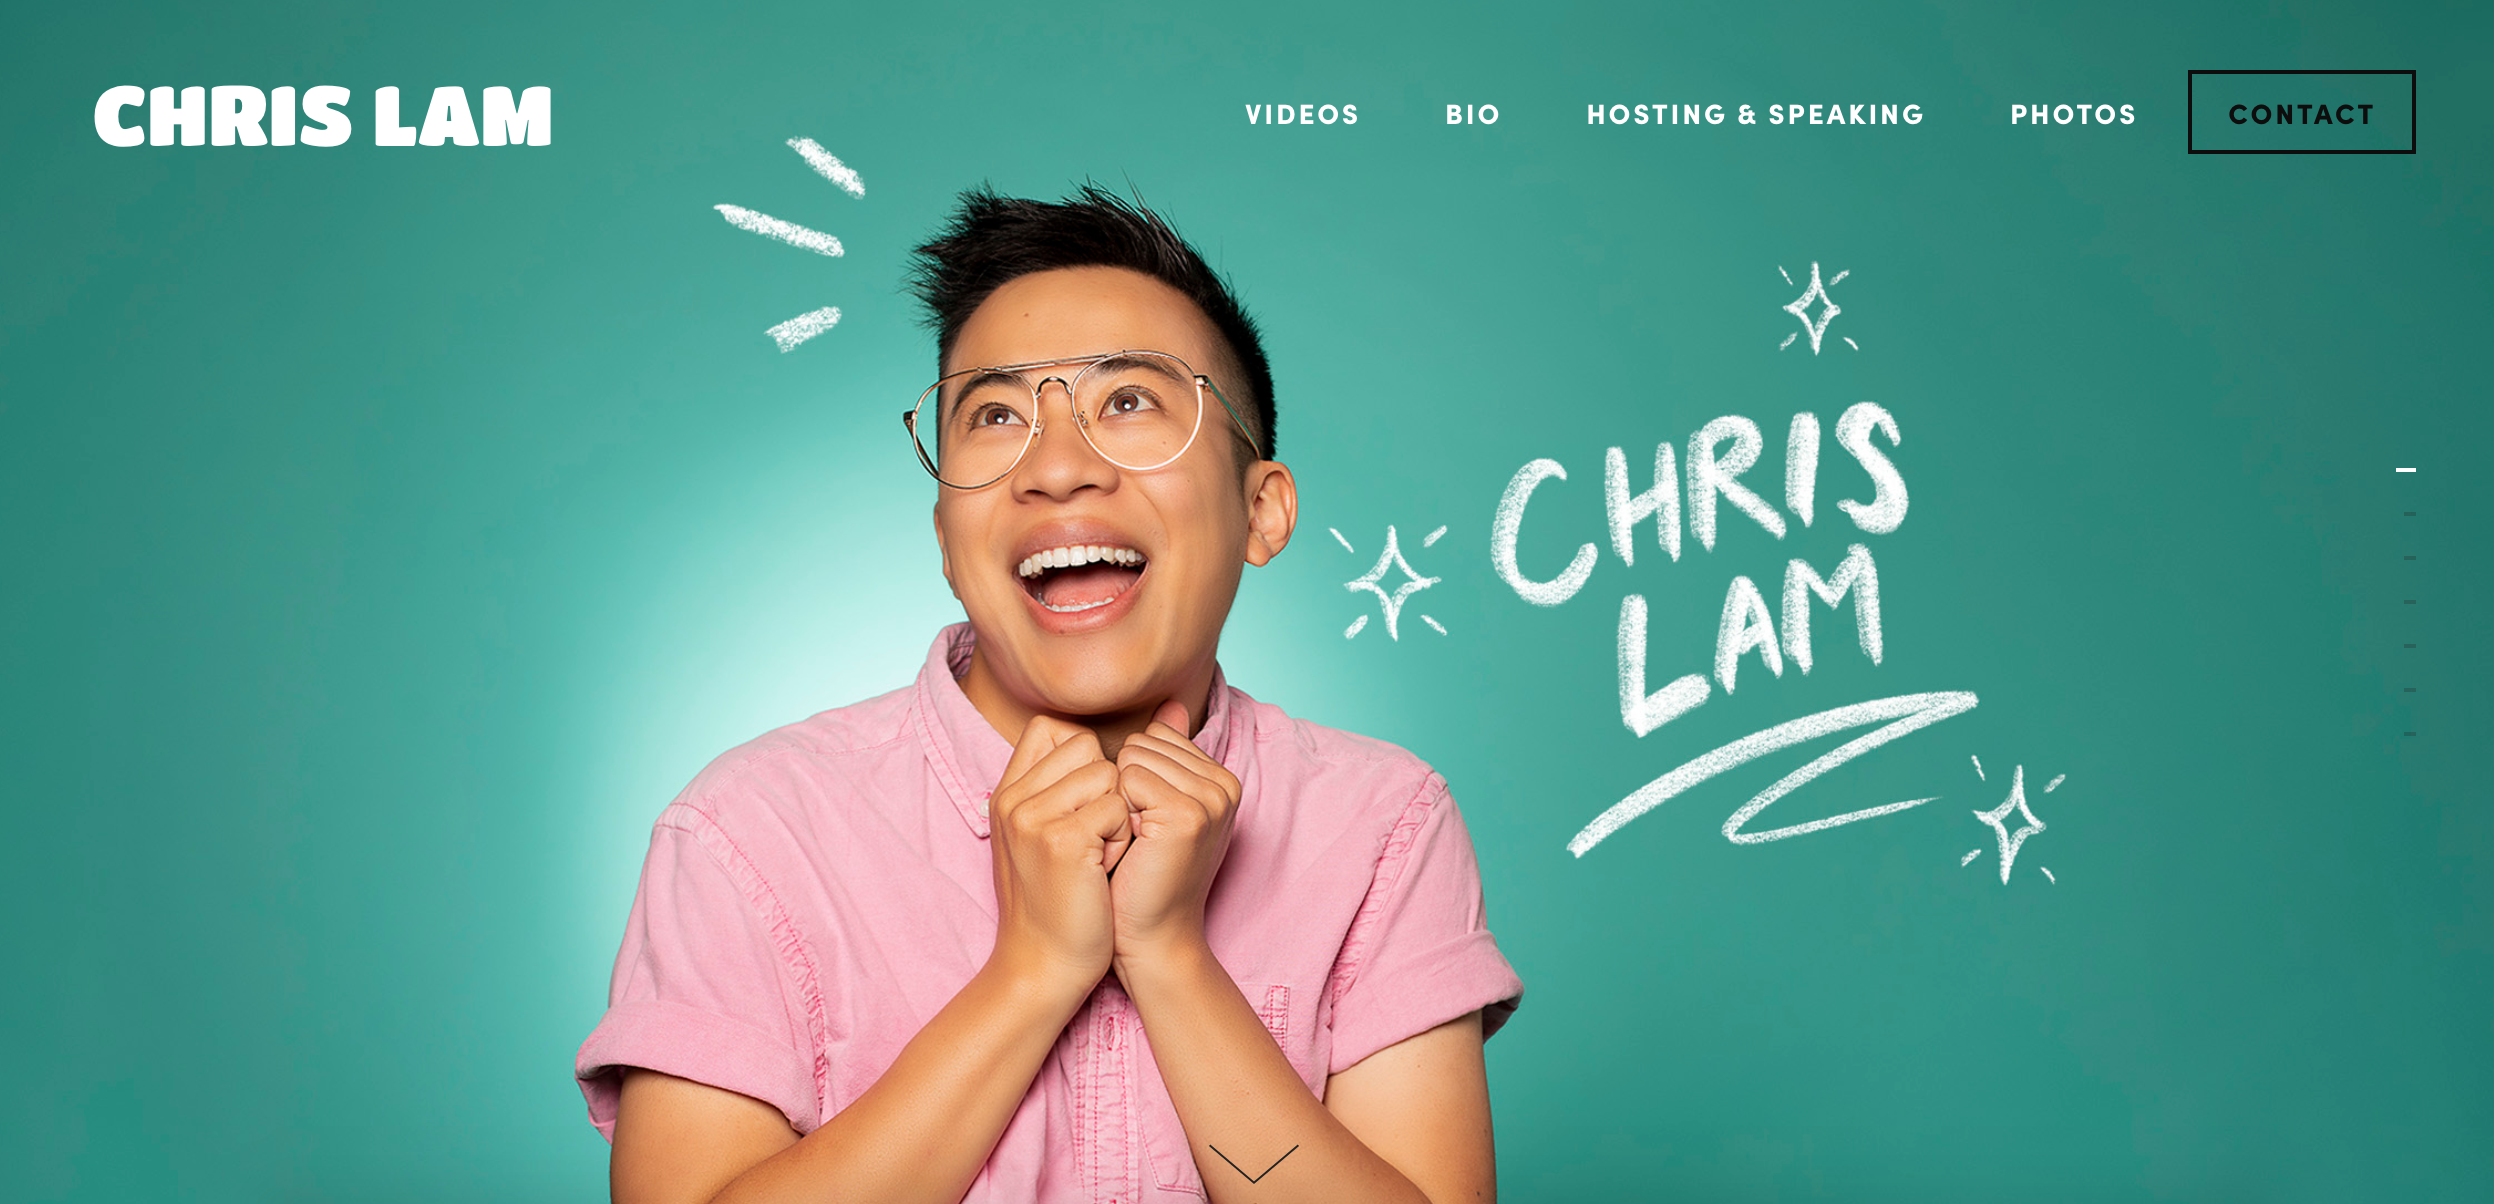 Chris lam website